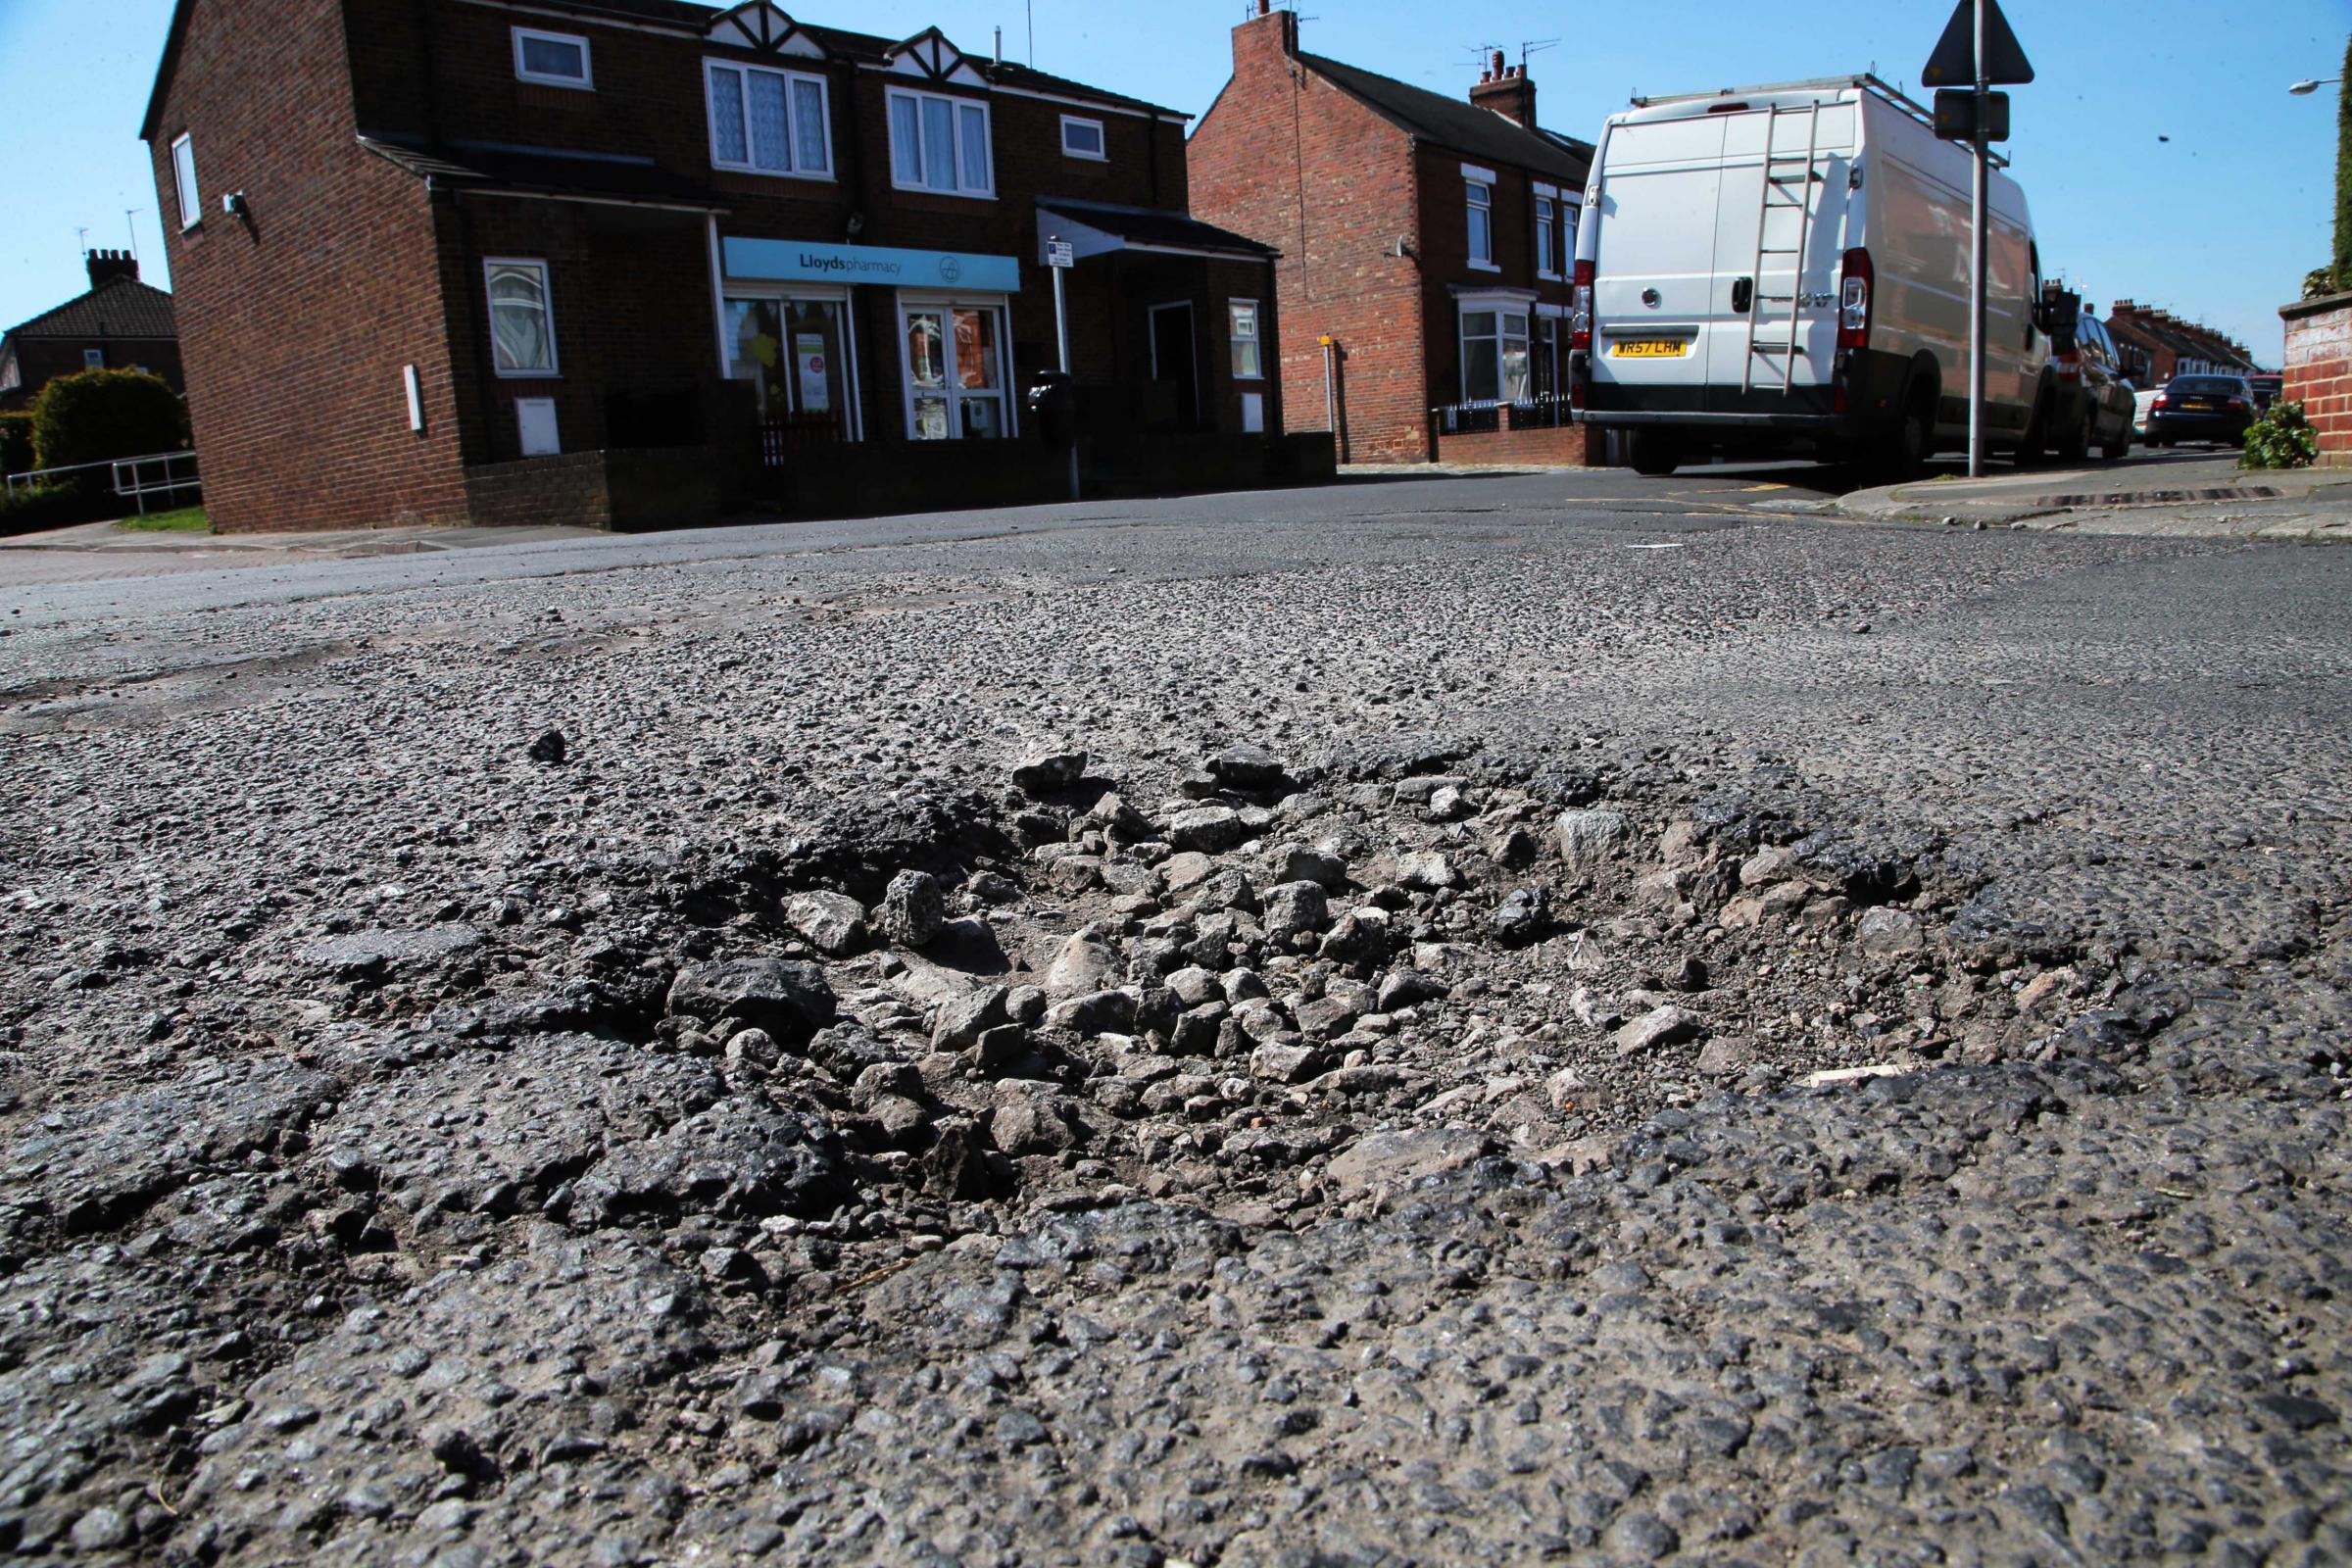 Bolton's roads given £700,000 boost to repair potholes